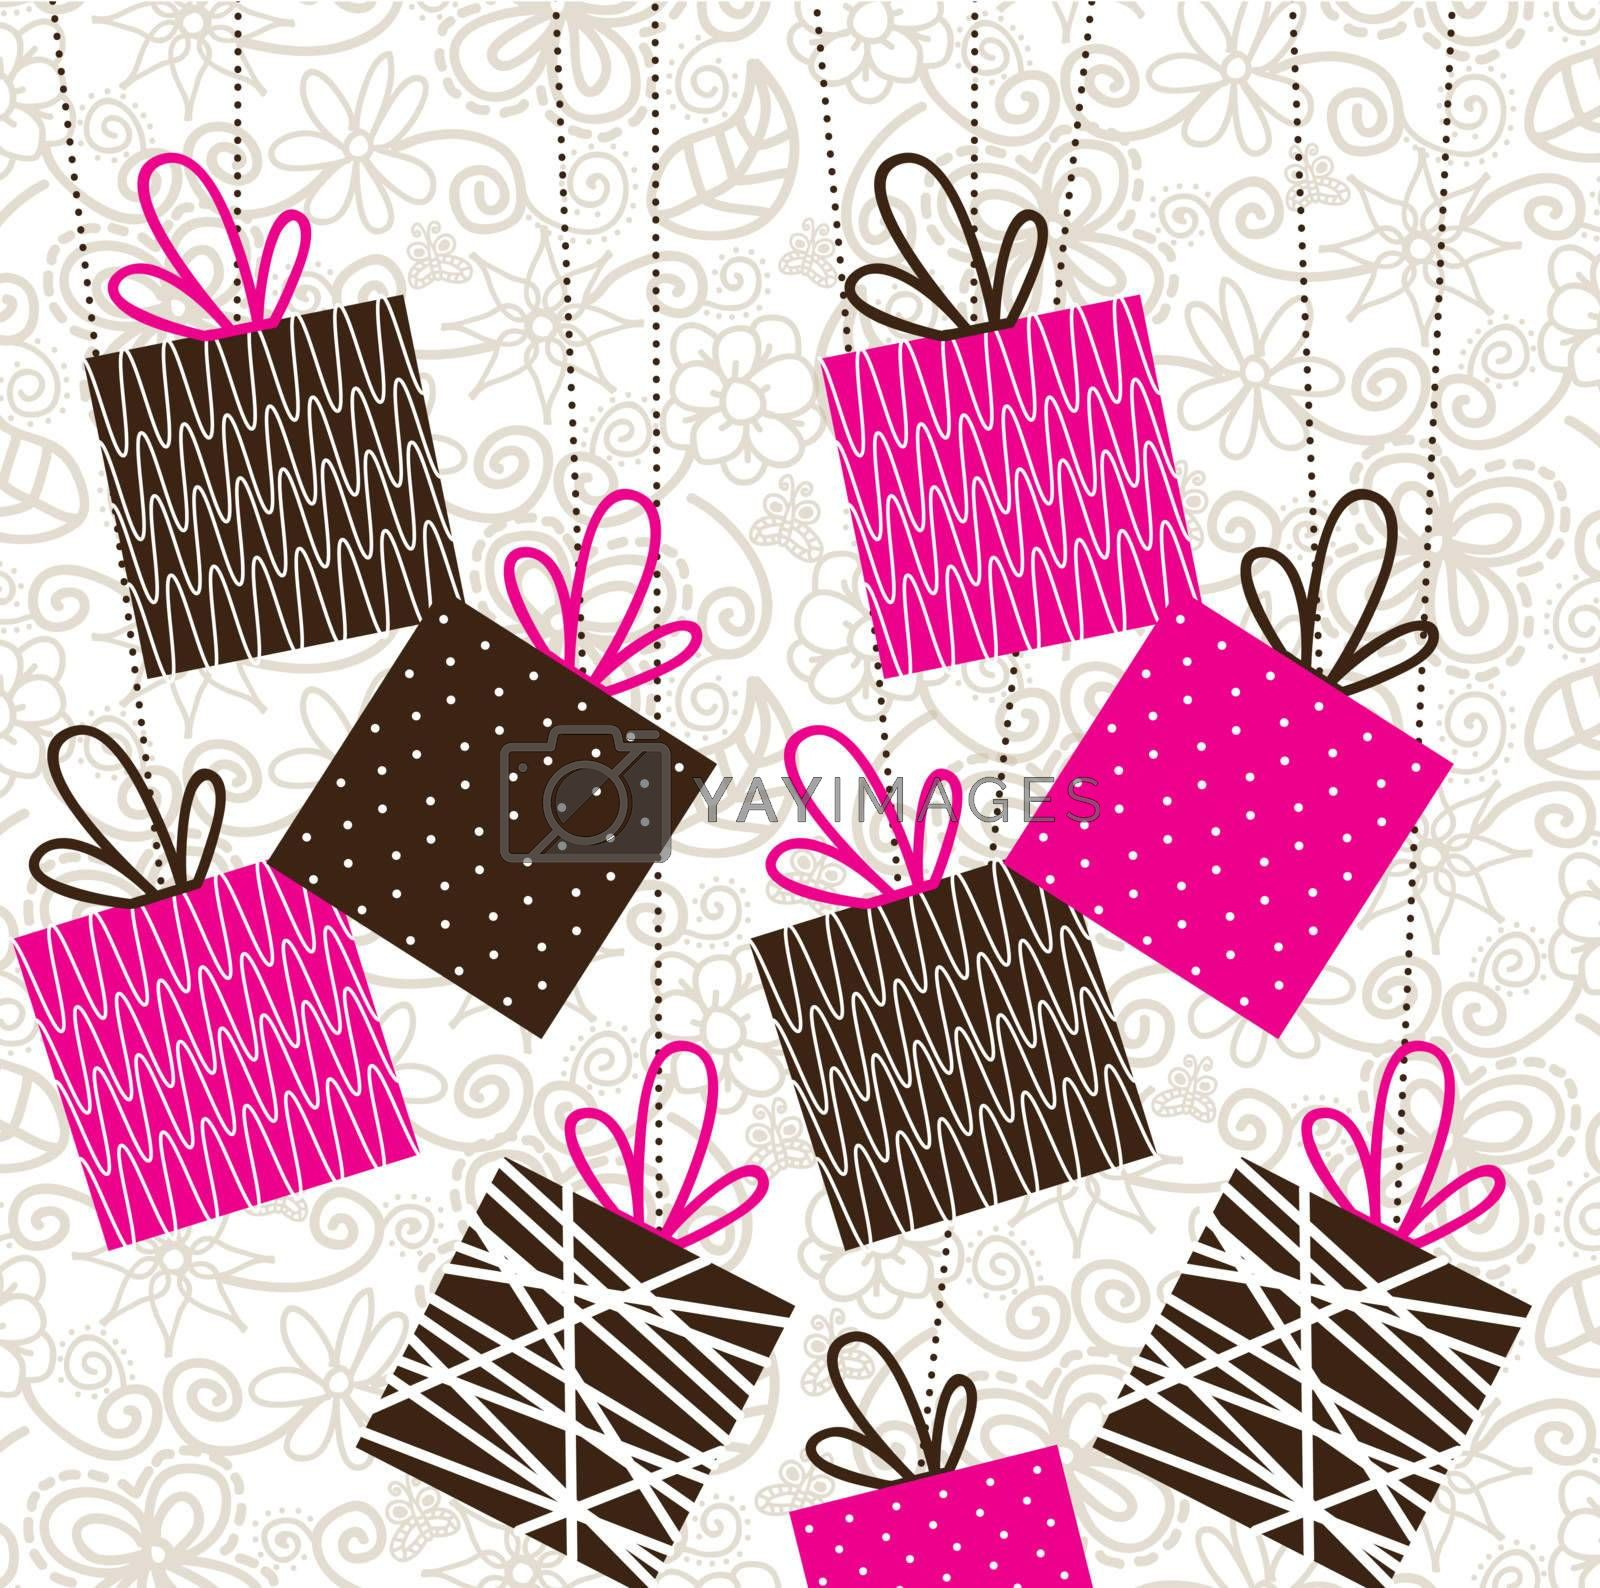 birthday gifts over vintage background vector illustration